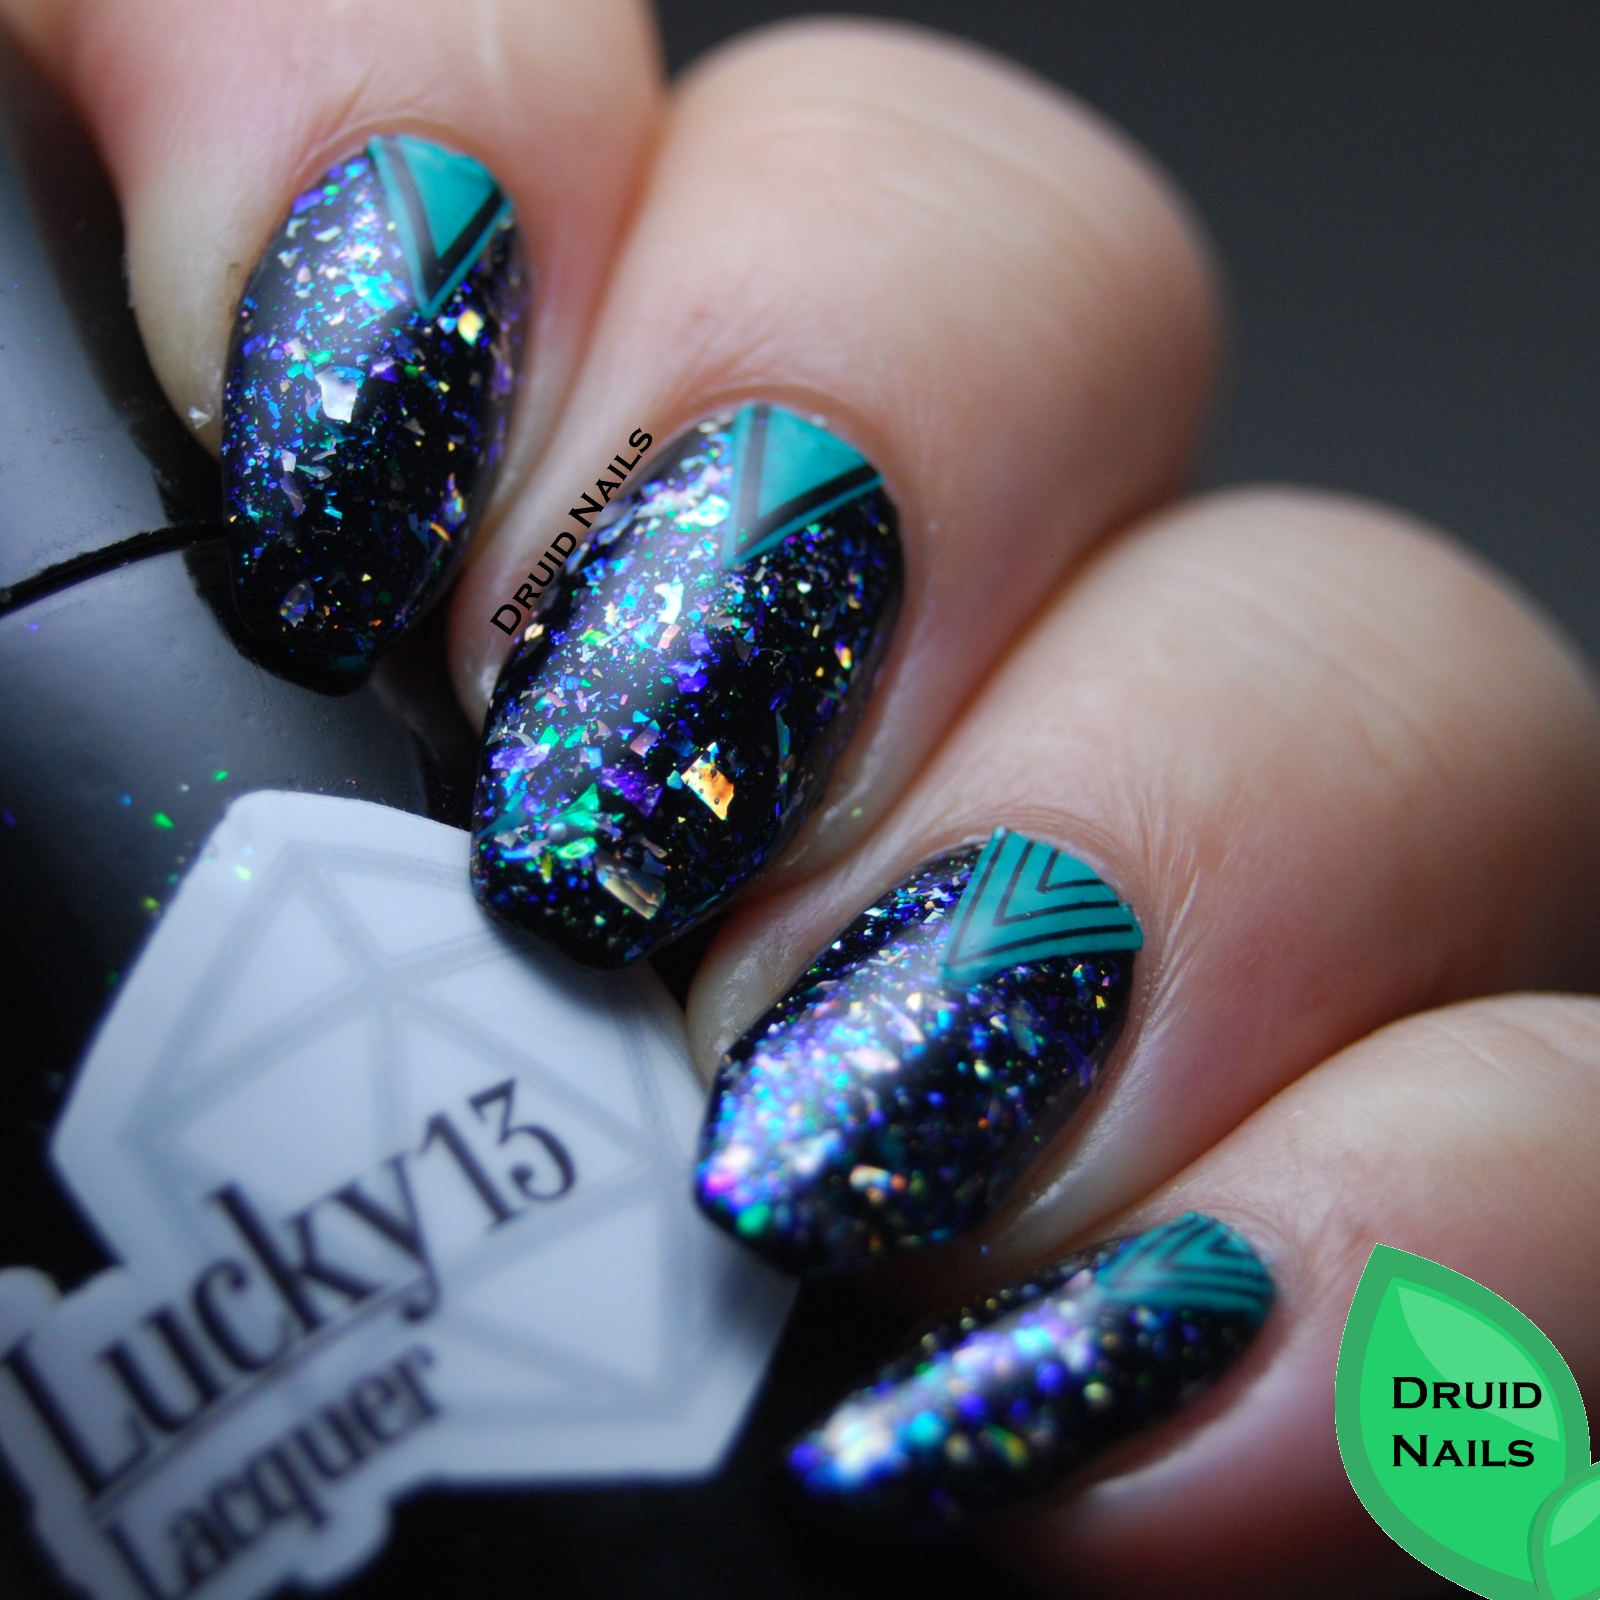 Druid Nails 26 Great Nail Art Ideas Made With A Mat Or On Plastic